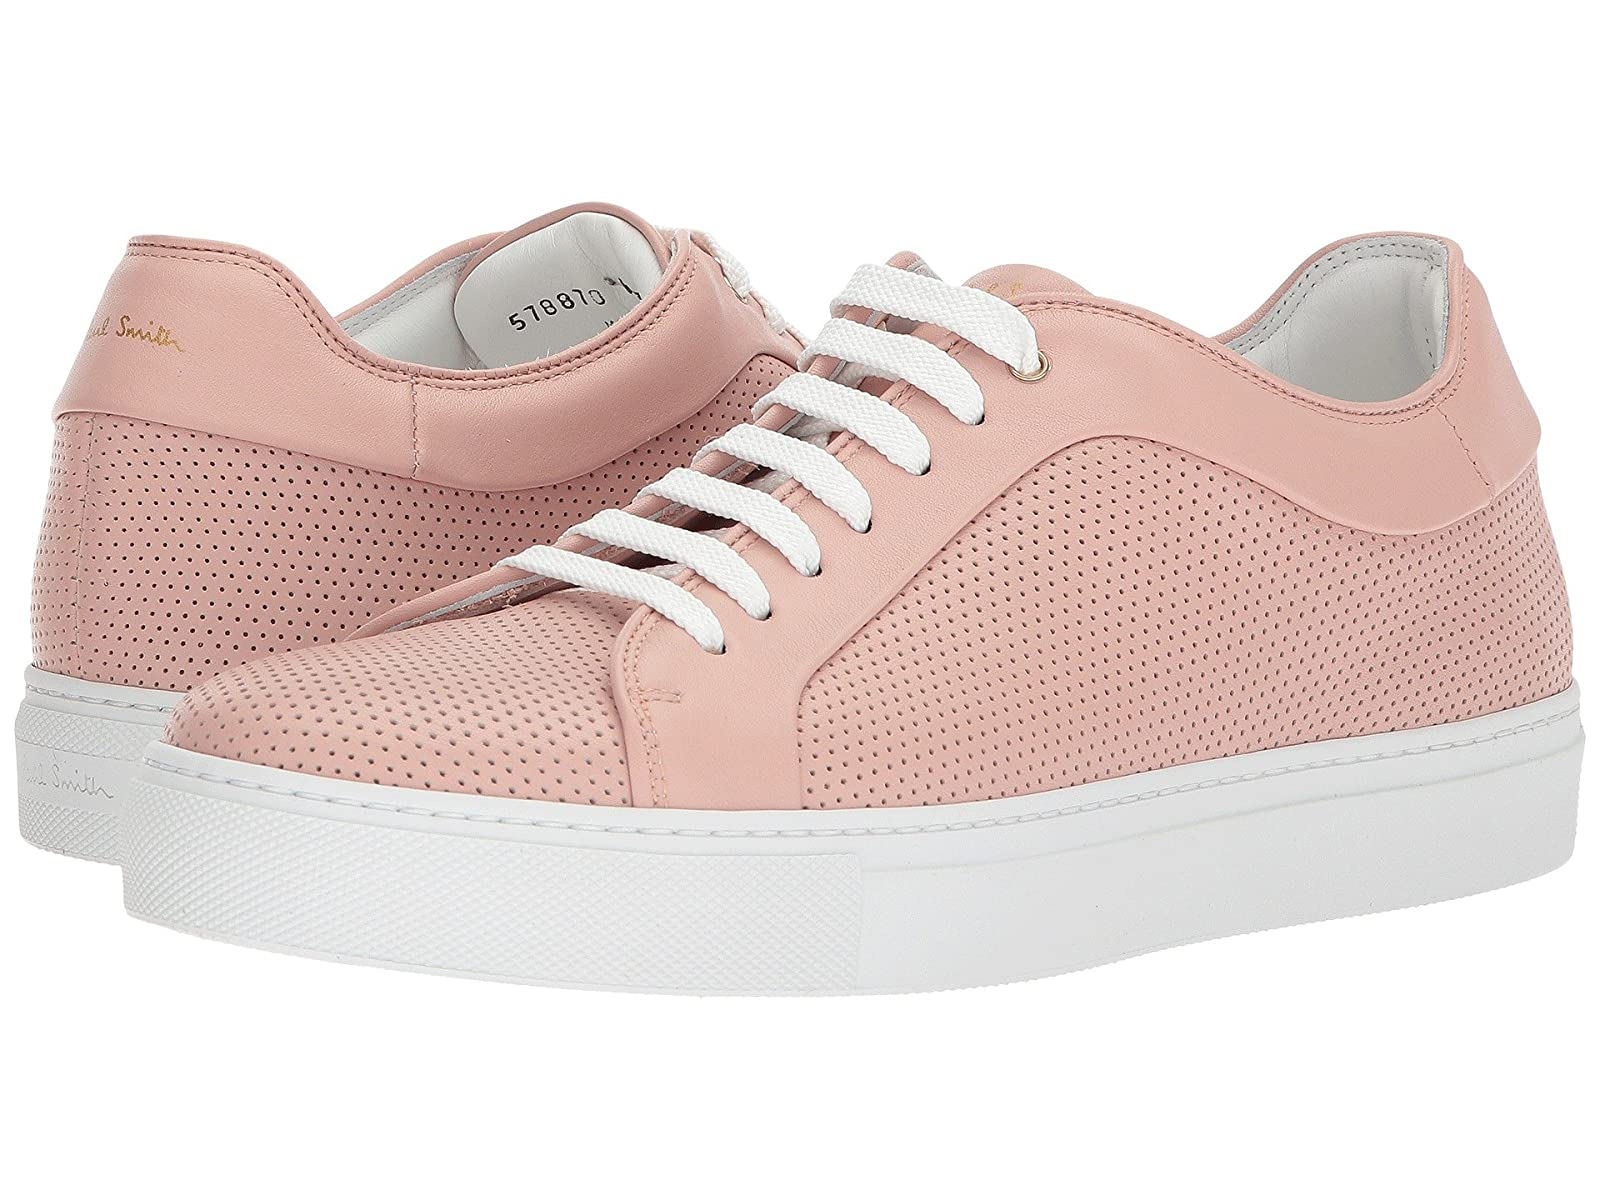 Paul Smith Basso SneakerAtmospheric grades have affordable shoes